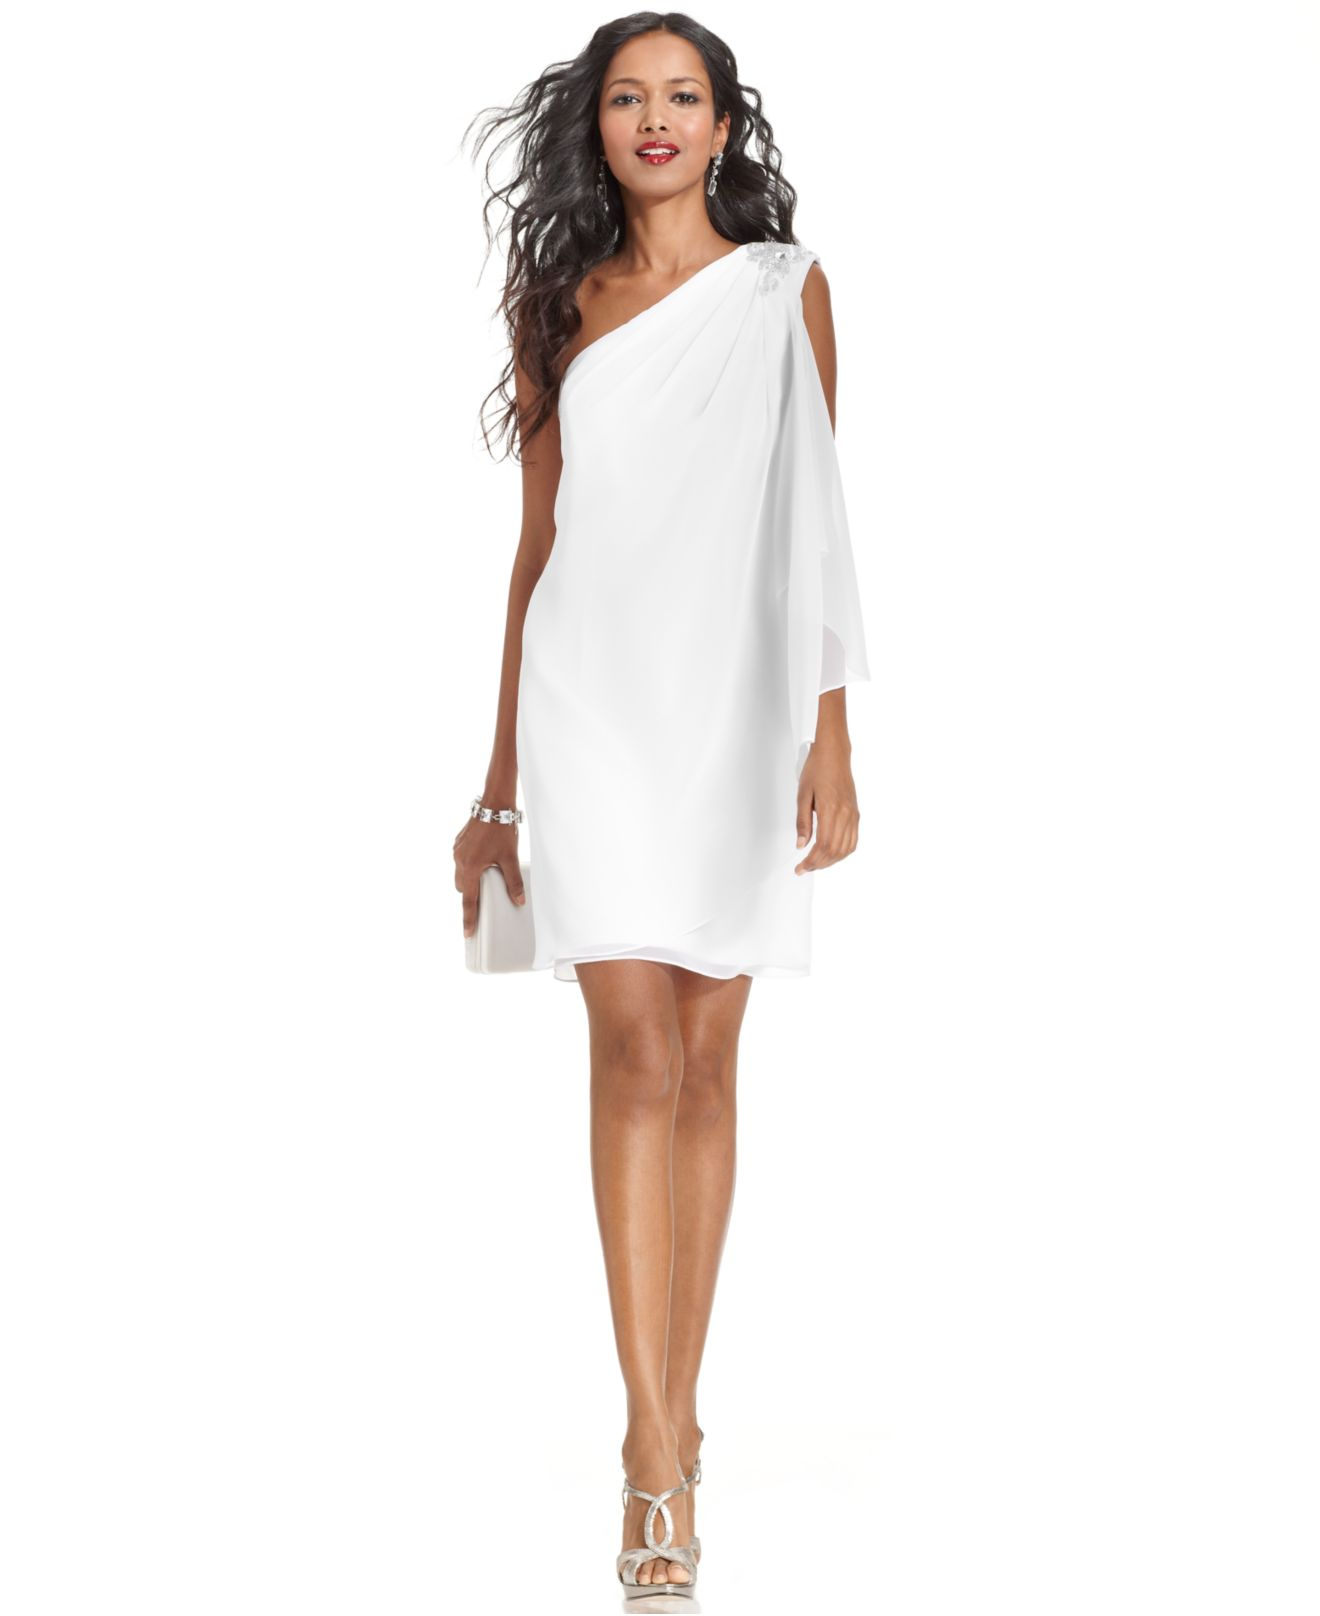 Js boutique One-shoulder Jeweled Dress in White | Lyst